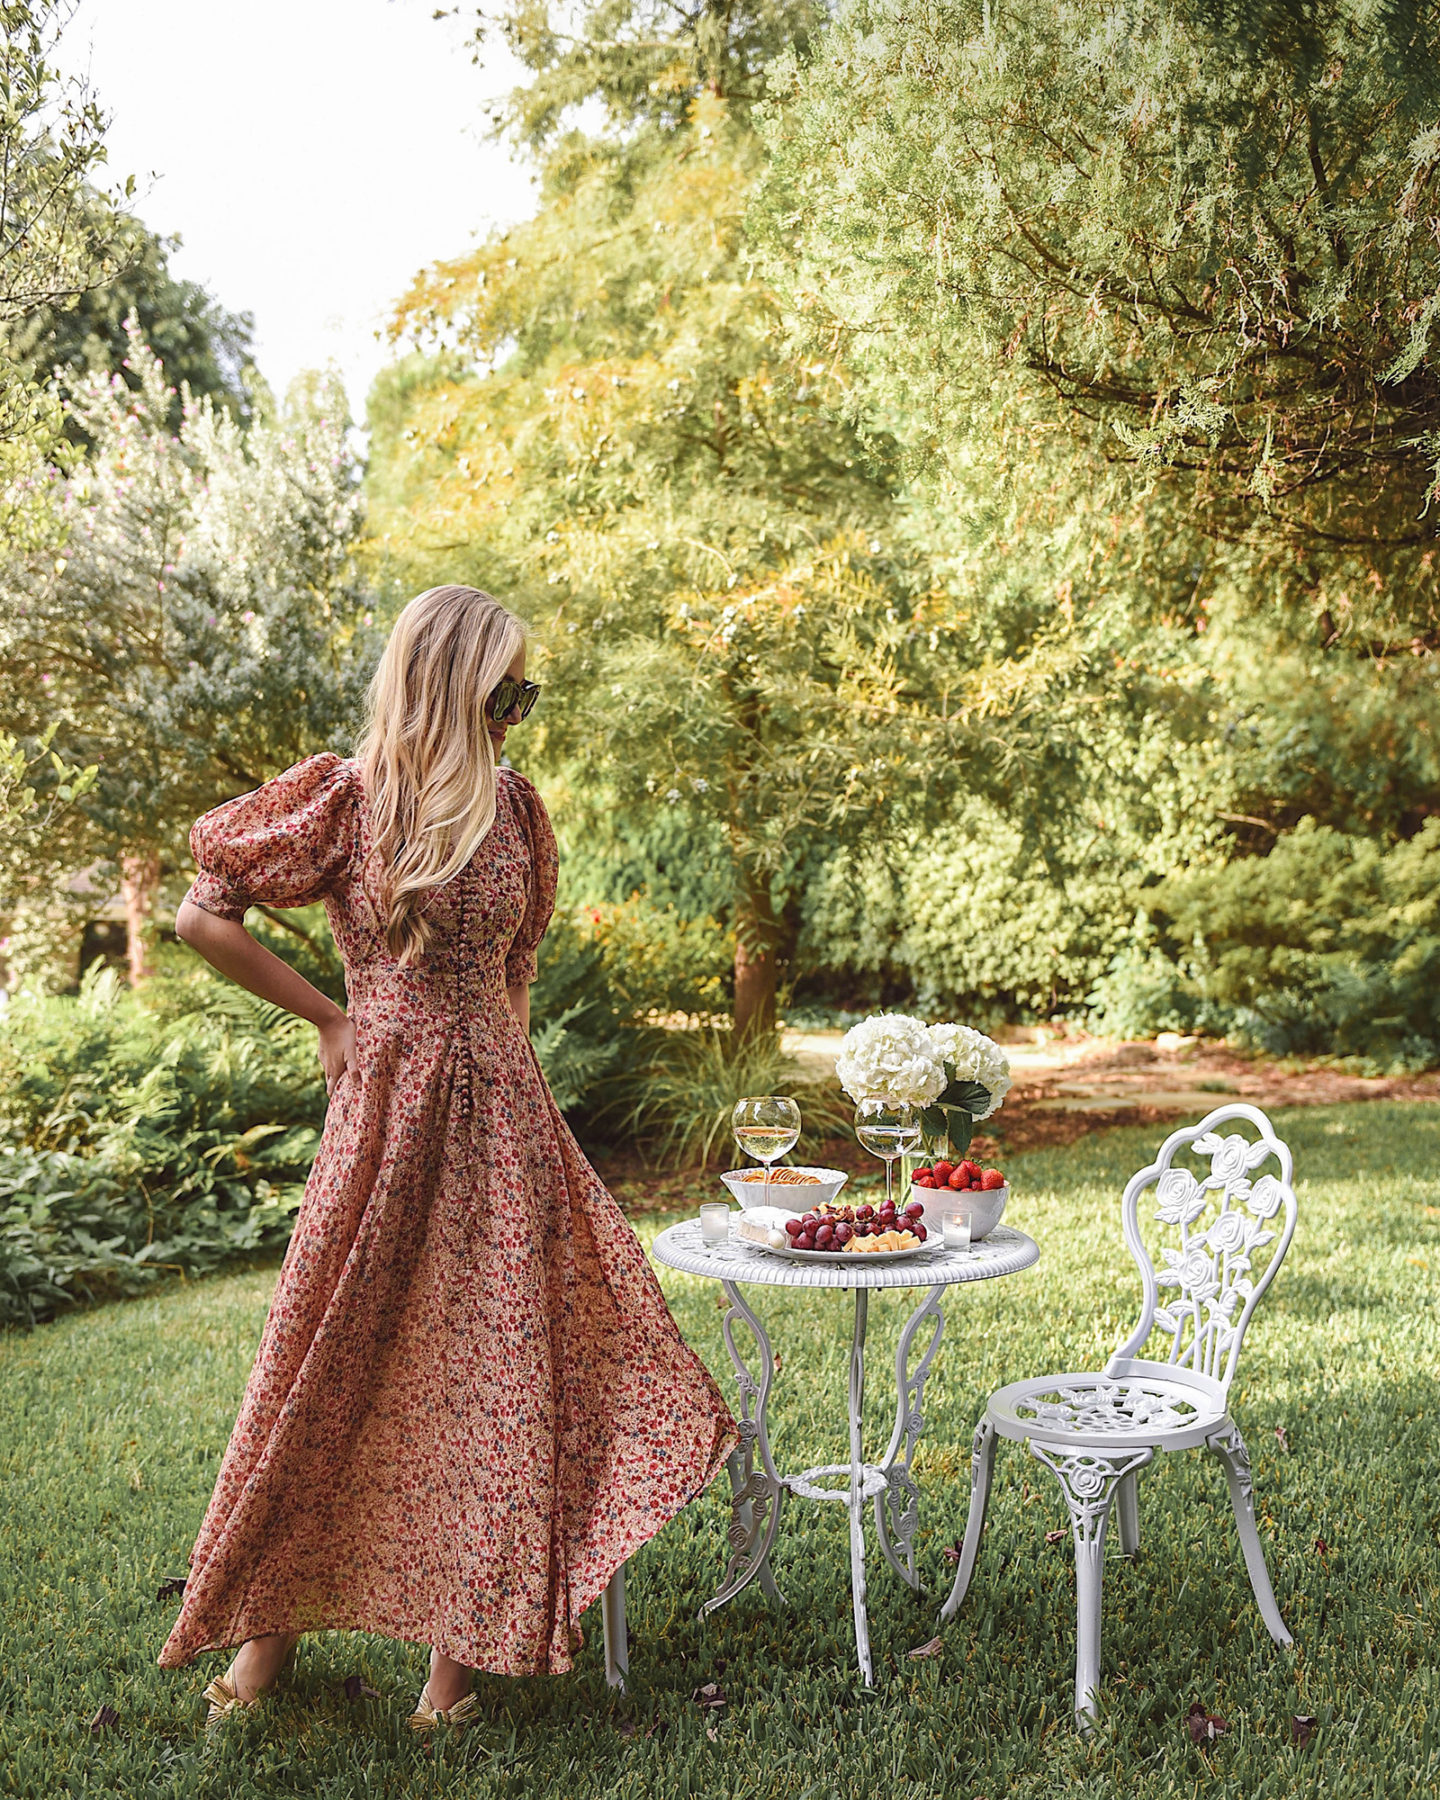 Lo-Murphy-Walmart-Cheeseboard-Date-Night-dallas-blogger-outdoor-furniture-Doen-Dress-fall-dress-floral-dress